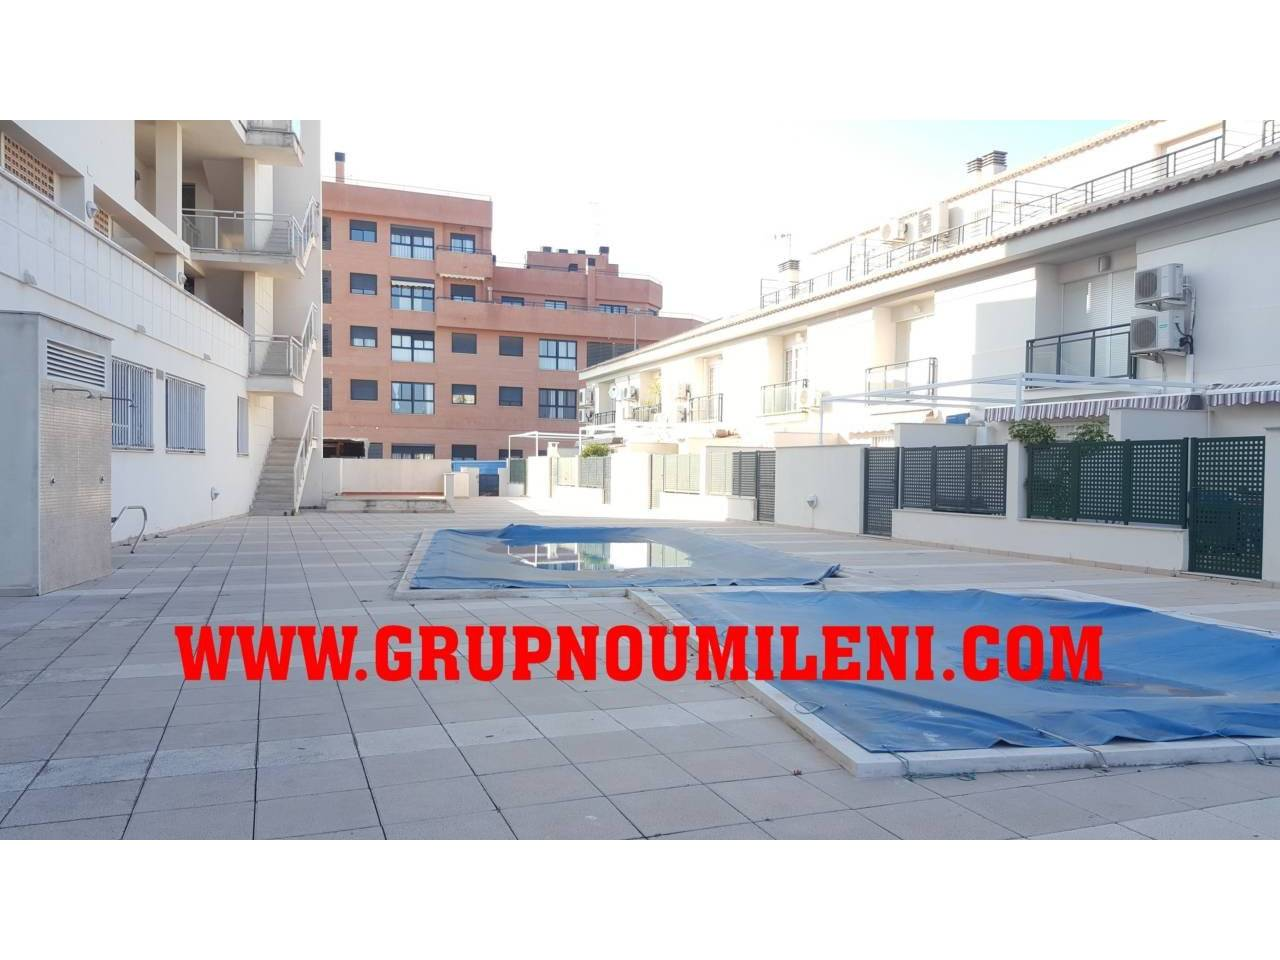 Location Appartement  Sin comisiones. Superf. 125 m²,  3 habitaciones (1 doble,  2 individuales),  2 b